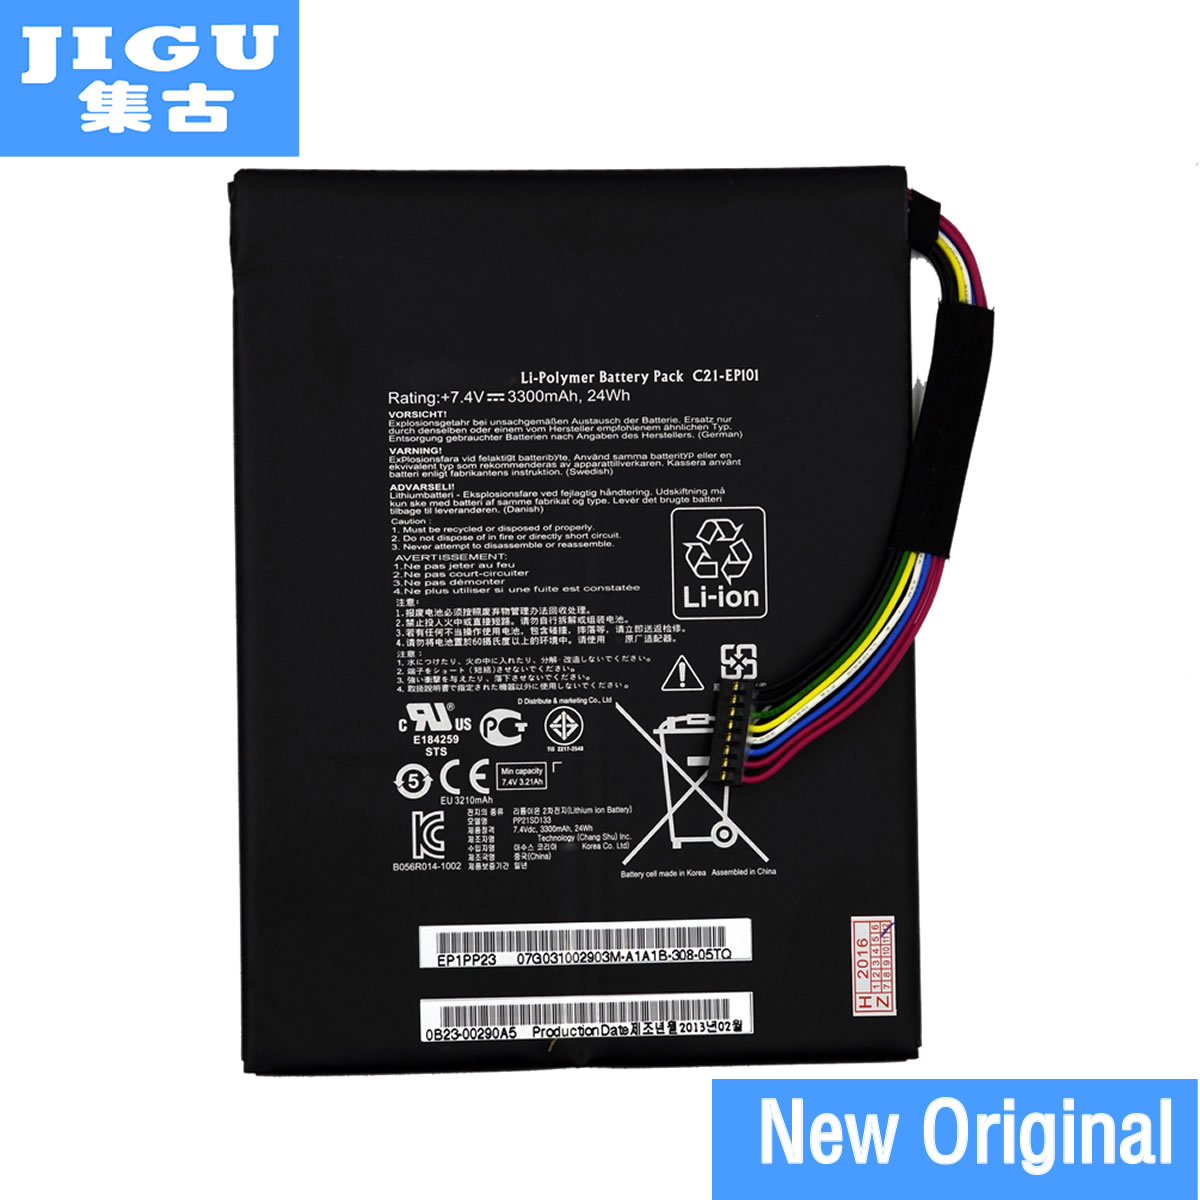 JIGU Original C21-EP101 tablet Battery for ASUS Eee Pad Transformer TF101 TR101 7.4V 3300mAh protective pu leather case for asus eee pad transformer tf101 black